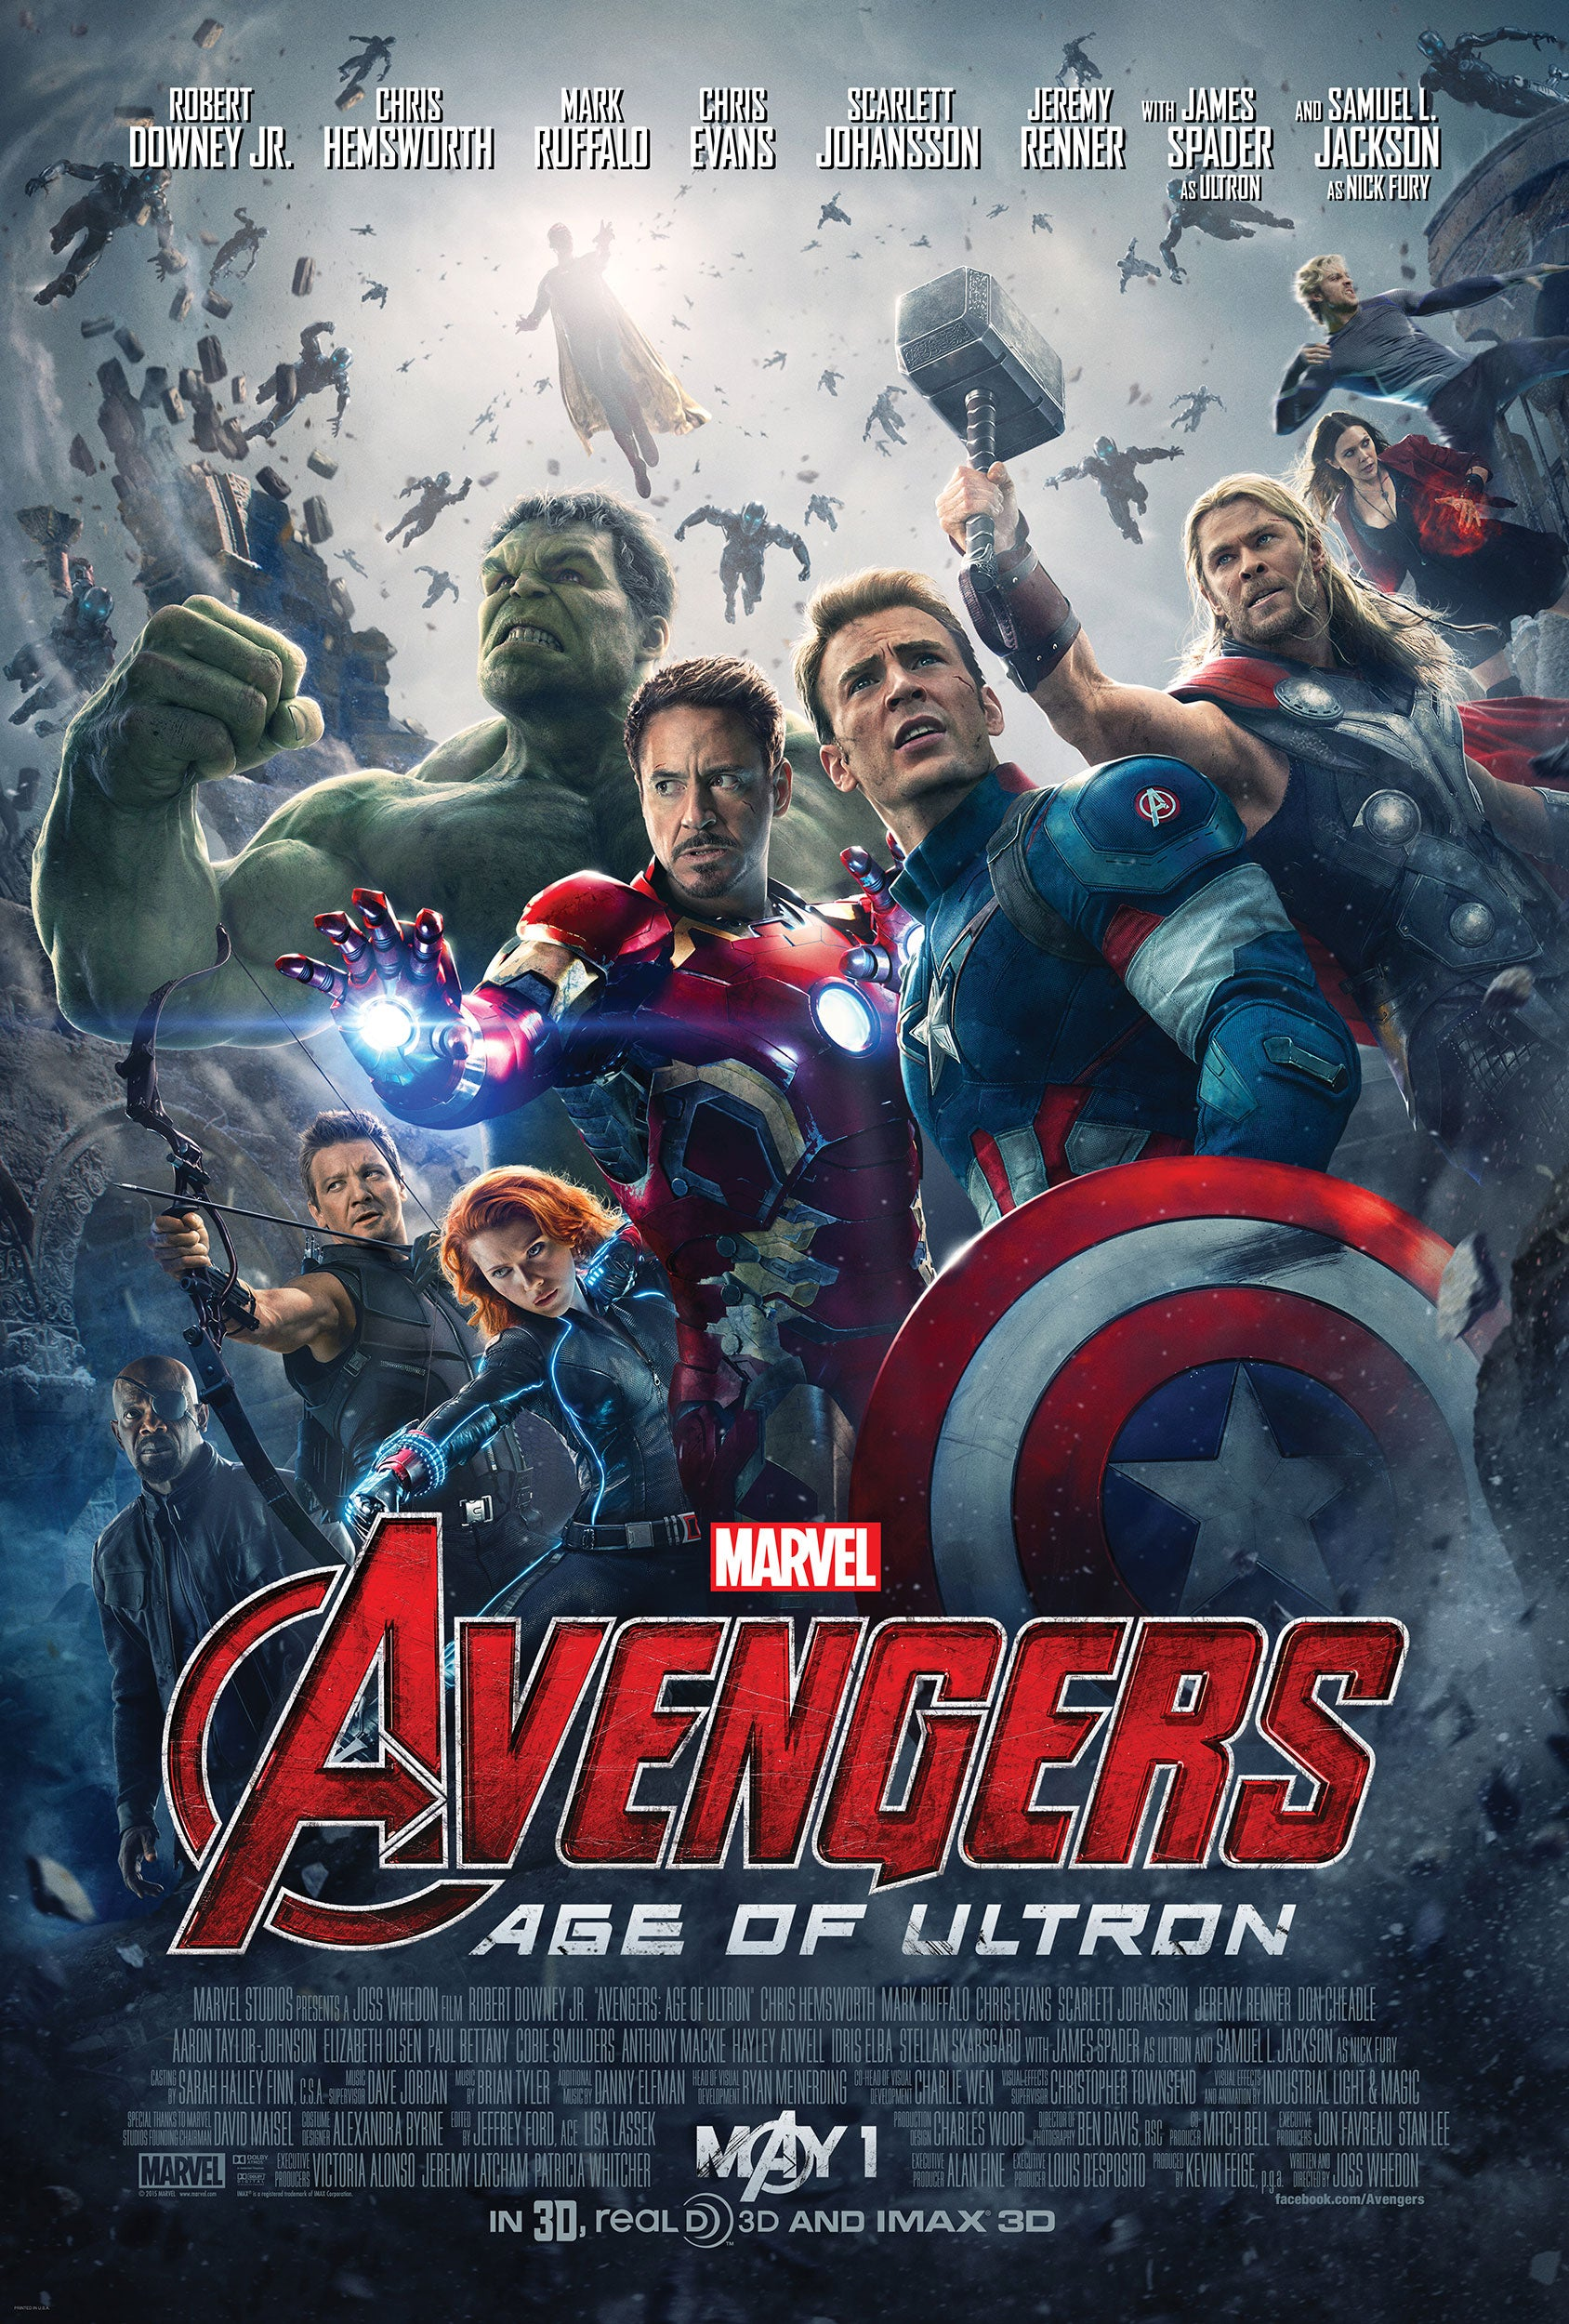 Avengers 2 Movie Poster - Marvel Cinematic Universe